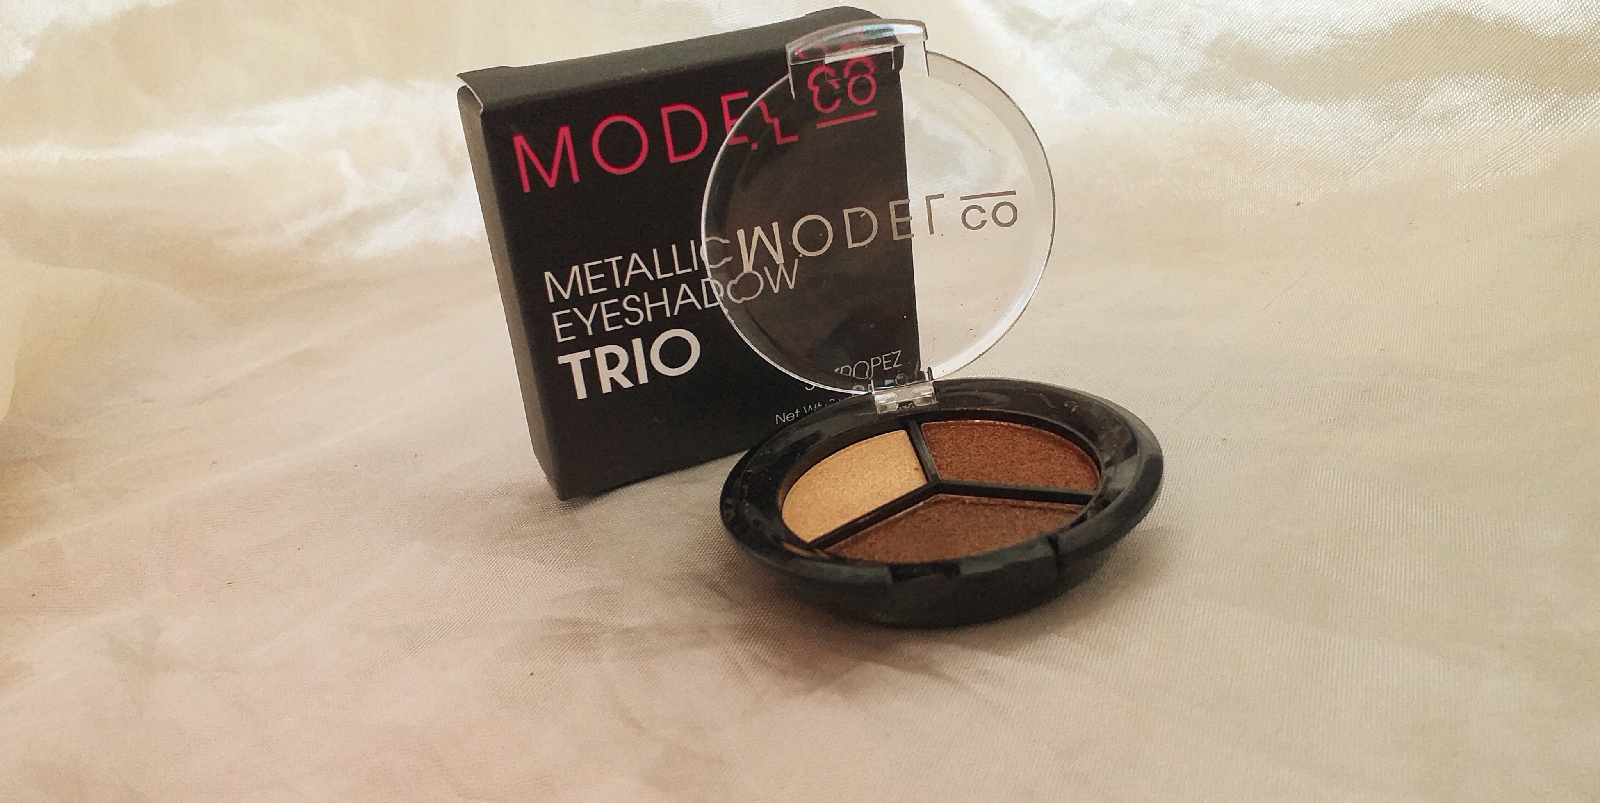 model.co trio eyeshadow